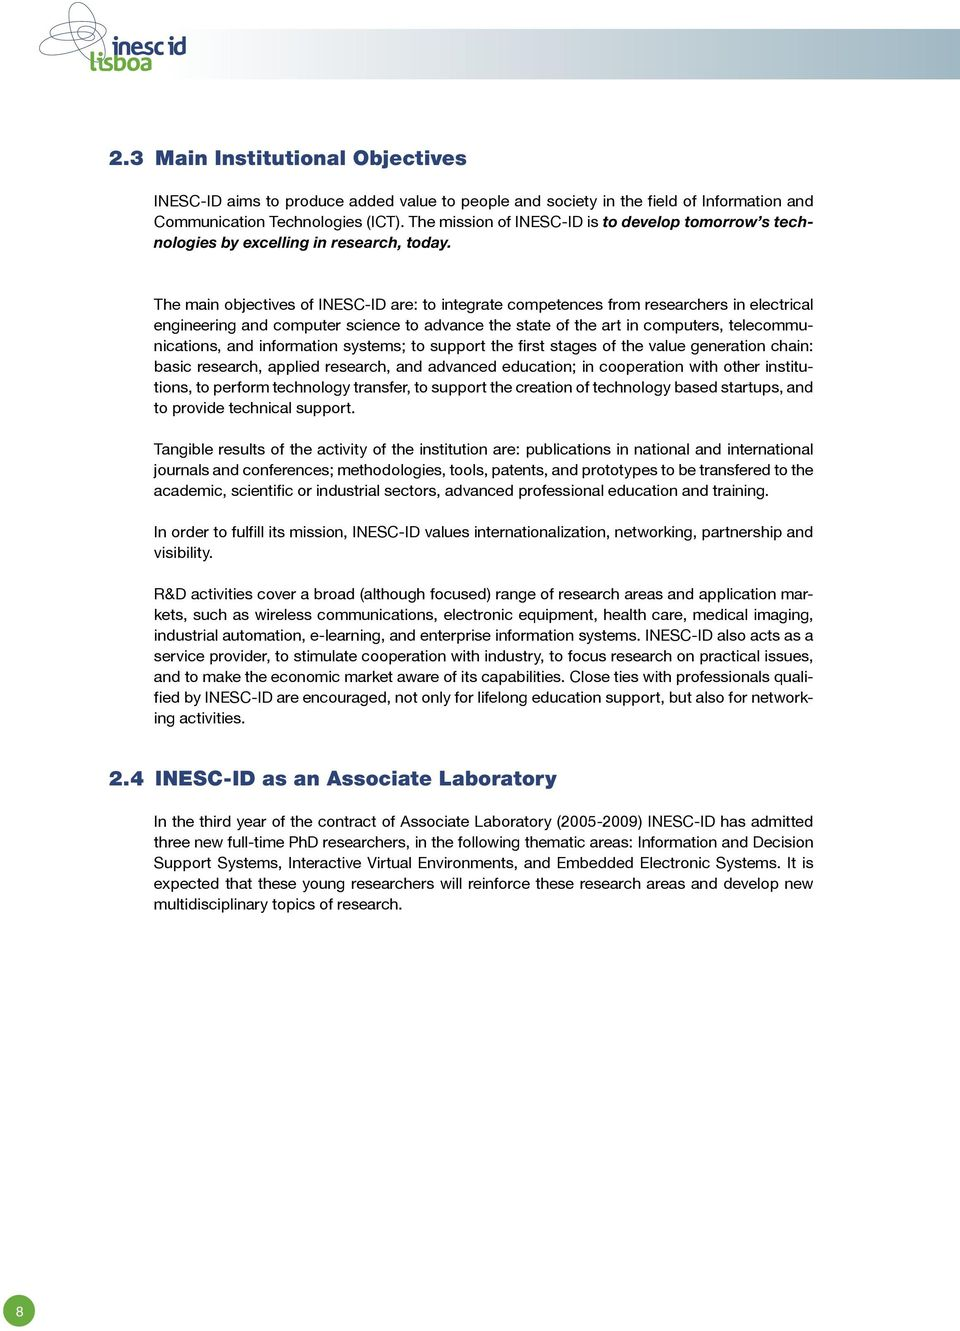 The main objectives of INESC-ID are: to integrate competences from researchers in electrical engineering and computer science to advance the state of the art in computers, telecommunications, and